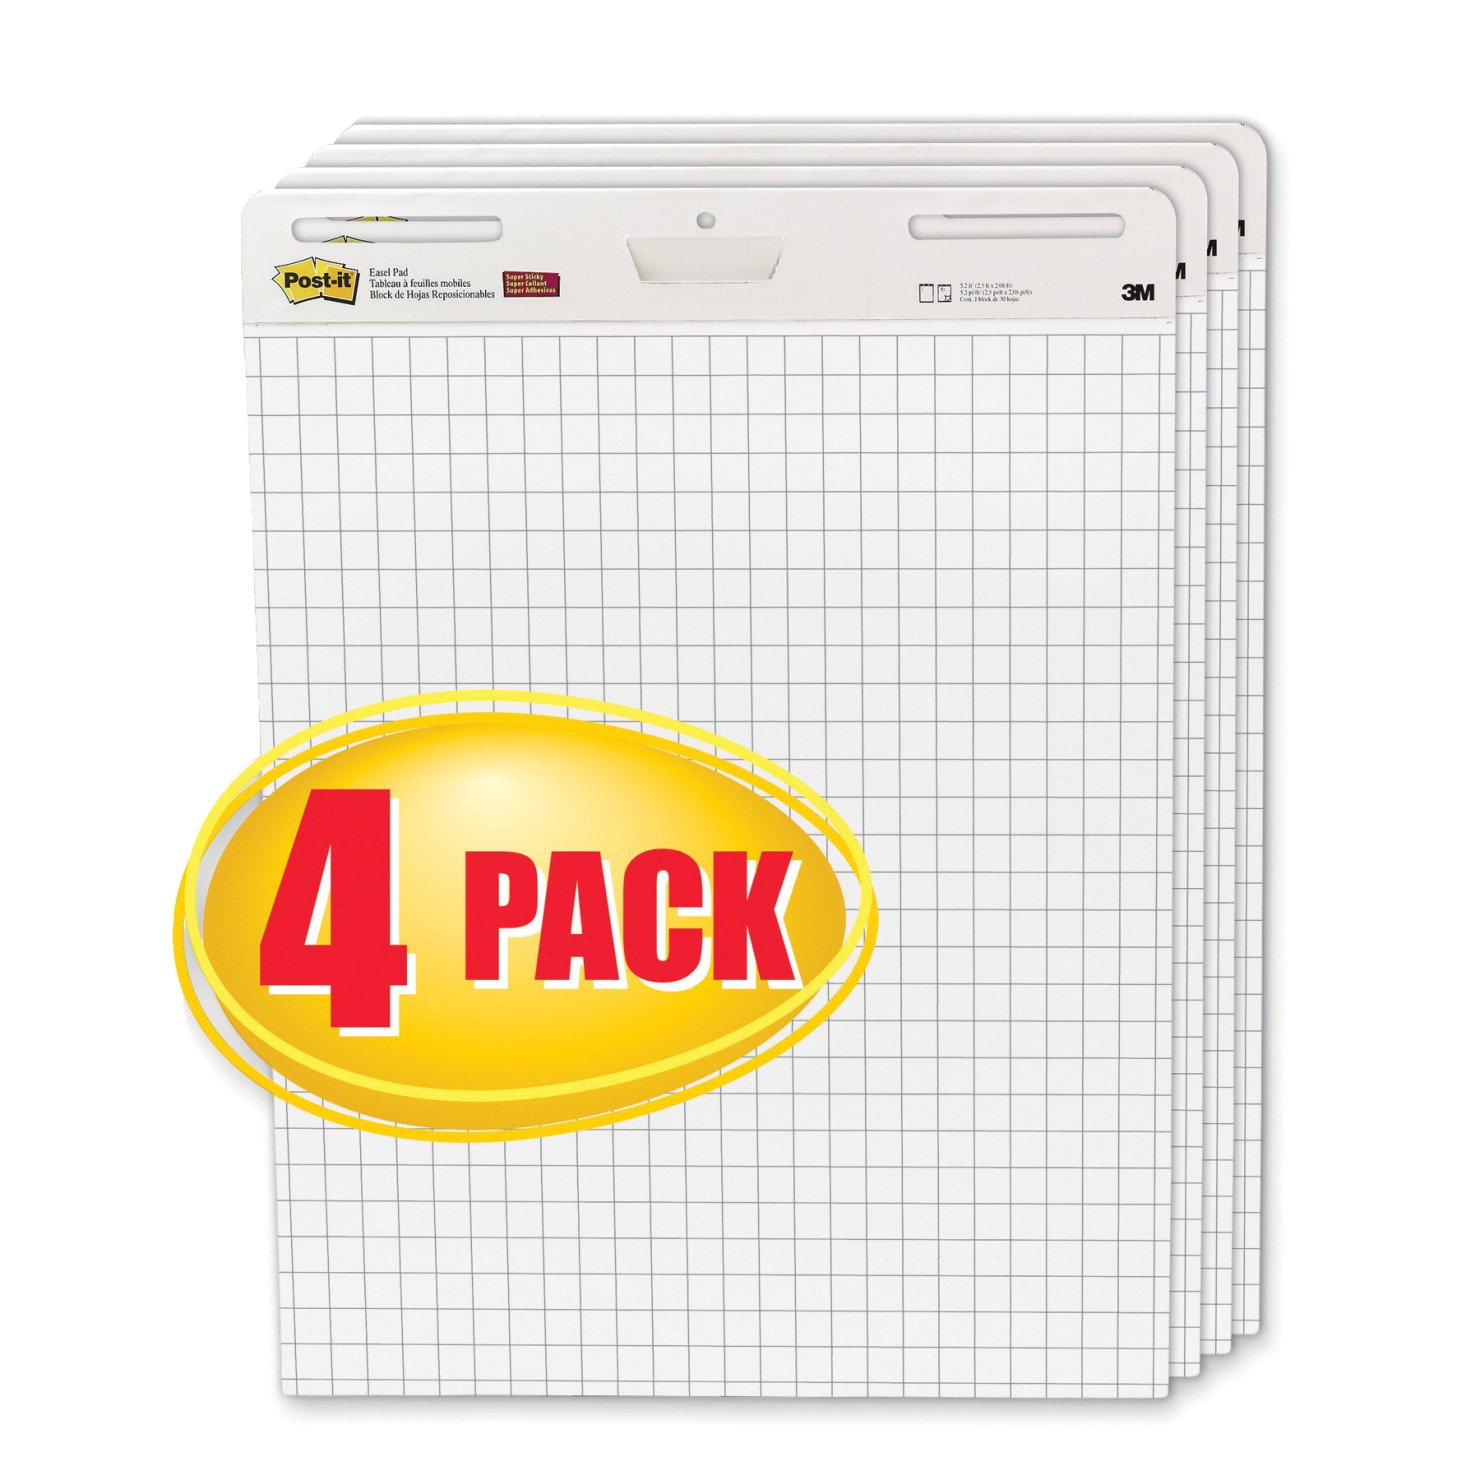 Post-It Easel Pads 560-VAD-4PK Self-Stick Easel Pads, Quad Rule, 25 x 30, White, 4 30-Sheet Pads-Carton by Post-it